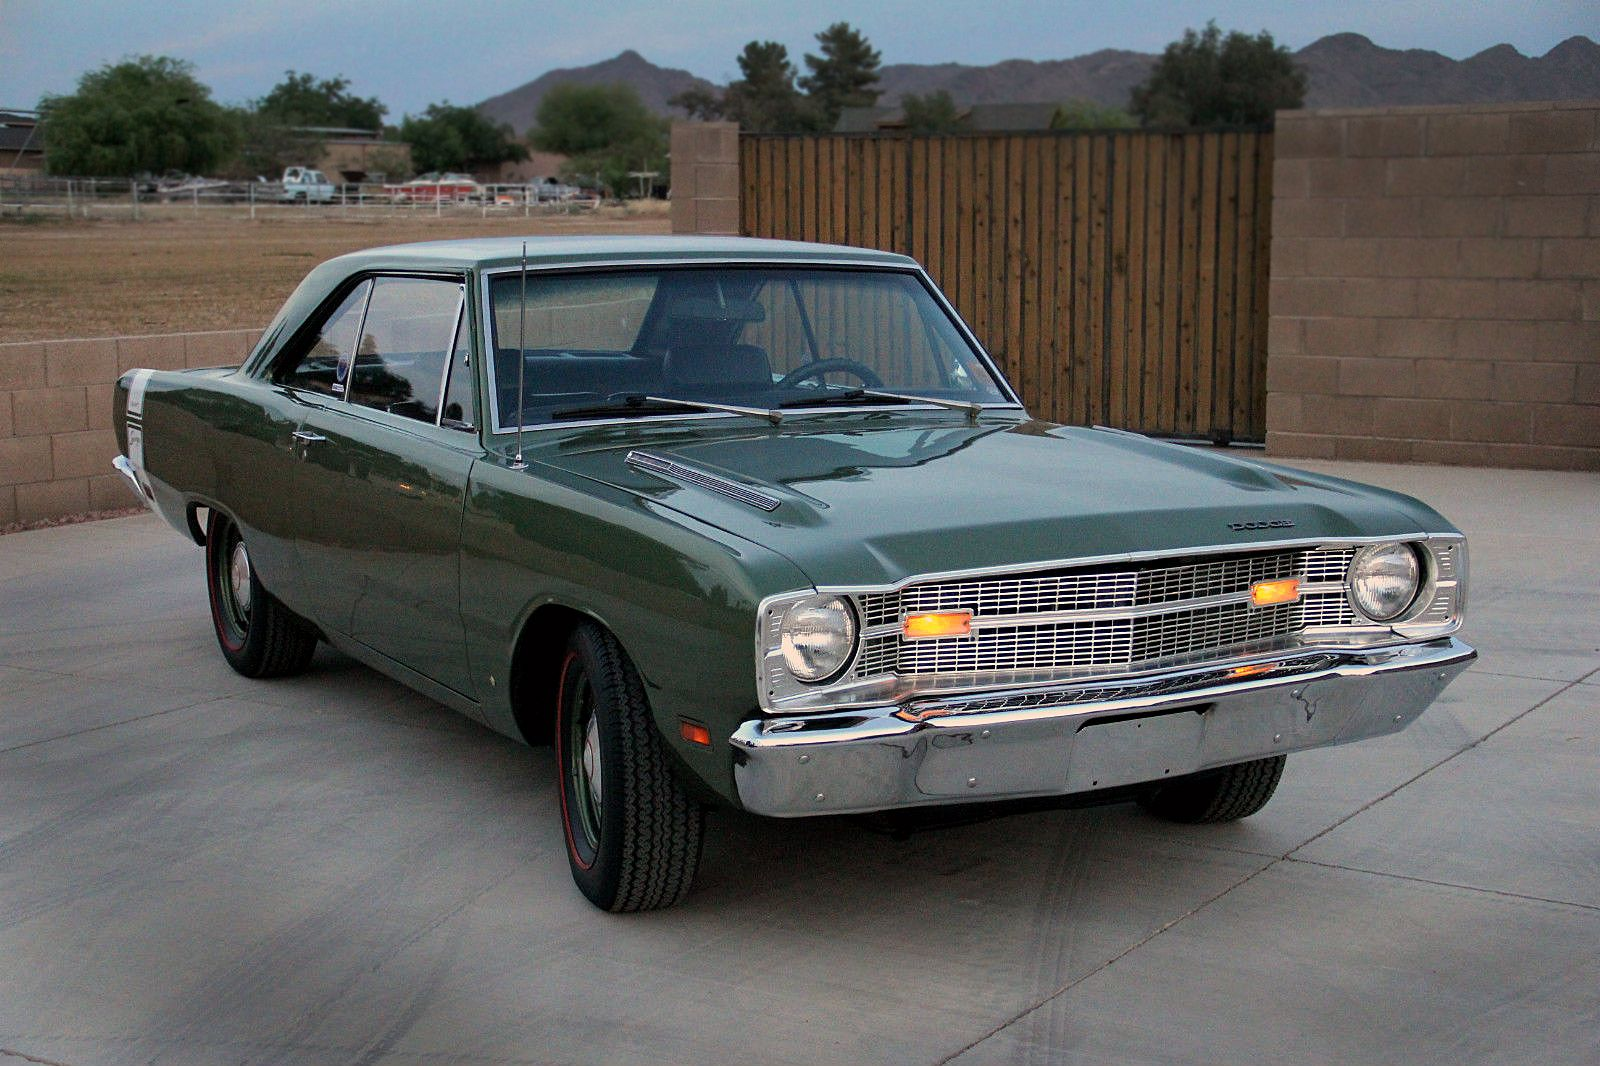 1969 dodge dart swinger 340ci 4speed click to find out more http